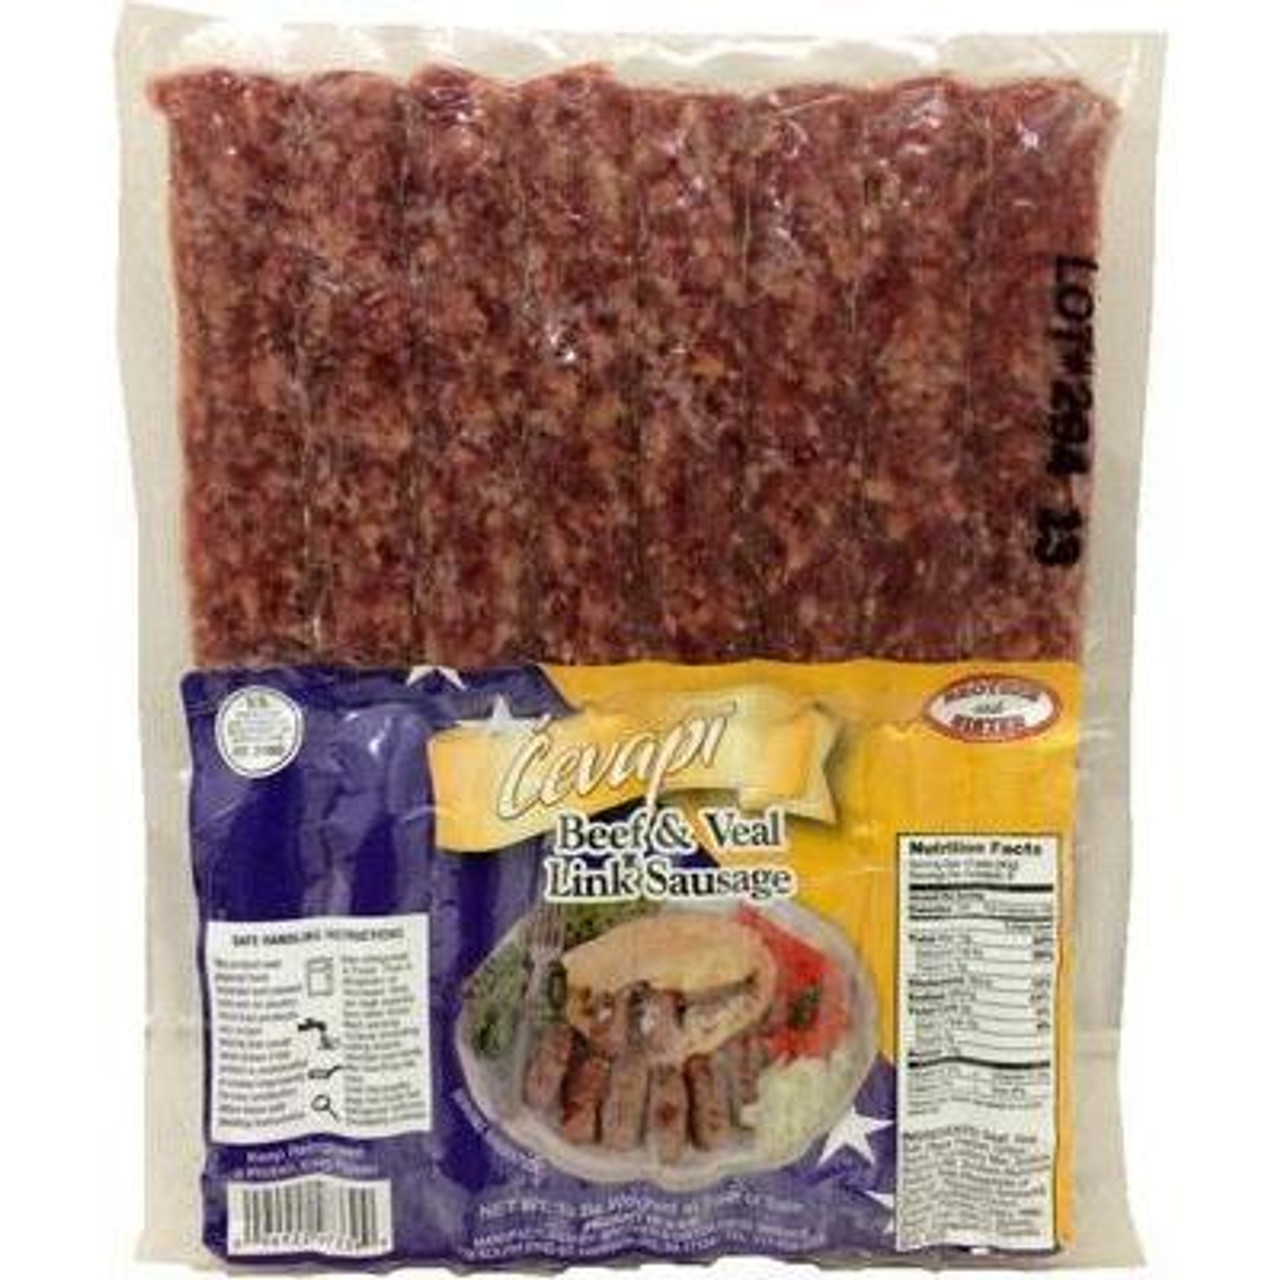 BROTHER&SISTER Cevapi Fresh Frozen Link Sausage (Clear Vac-Pack) [GA STORE PICK UP AND LOCAL DELIVERY PRODUCTS ONLY]